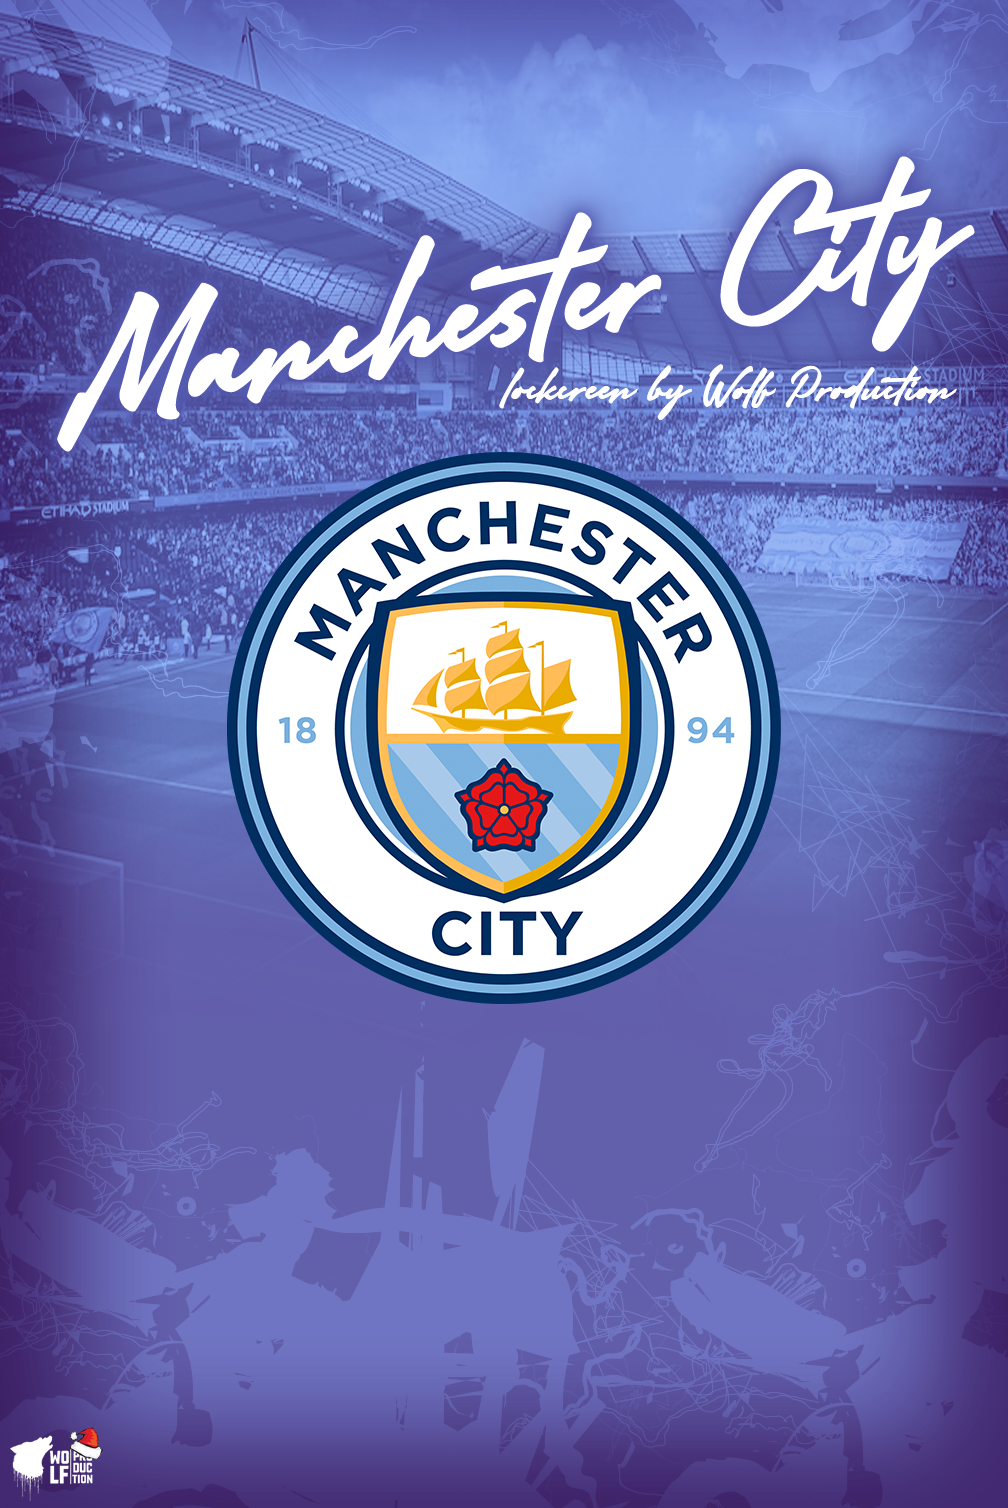 Manchester City Wallpaper Manchester City Wallpaper City Wallpaper Manchester City